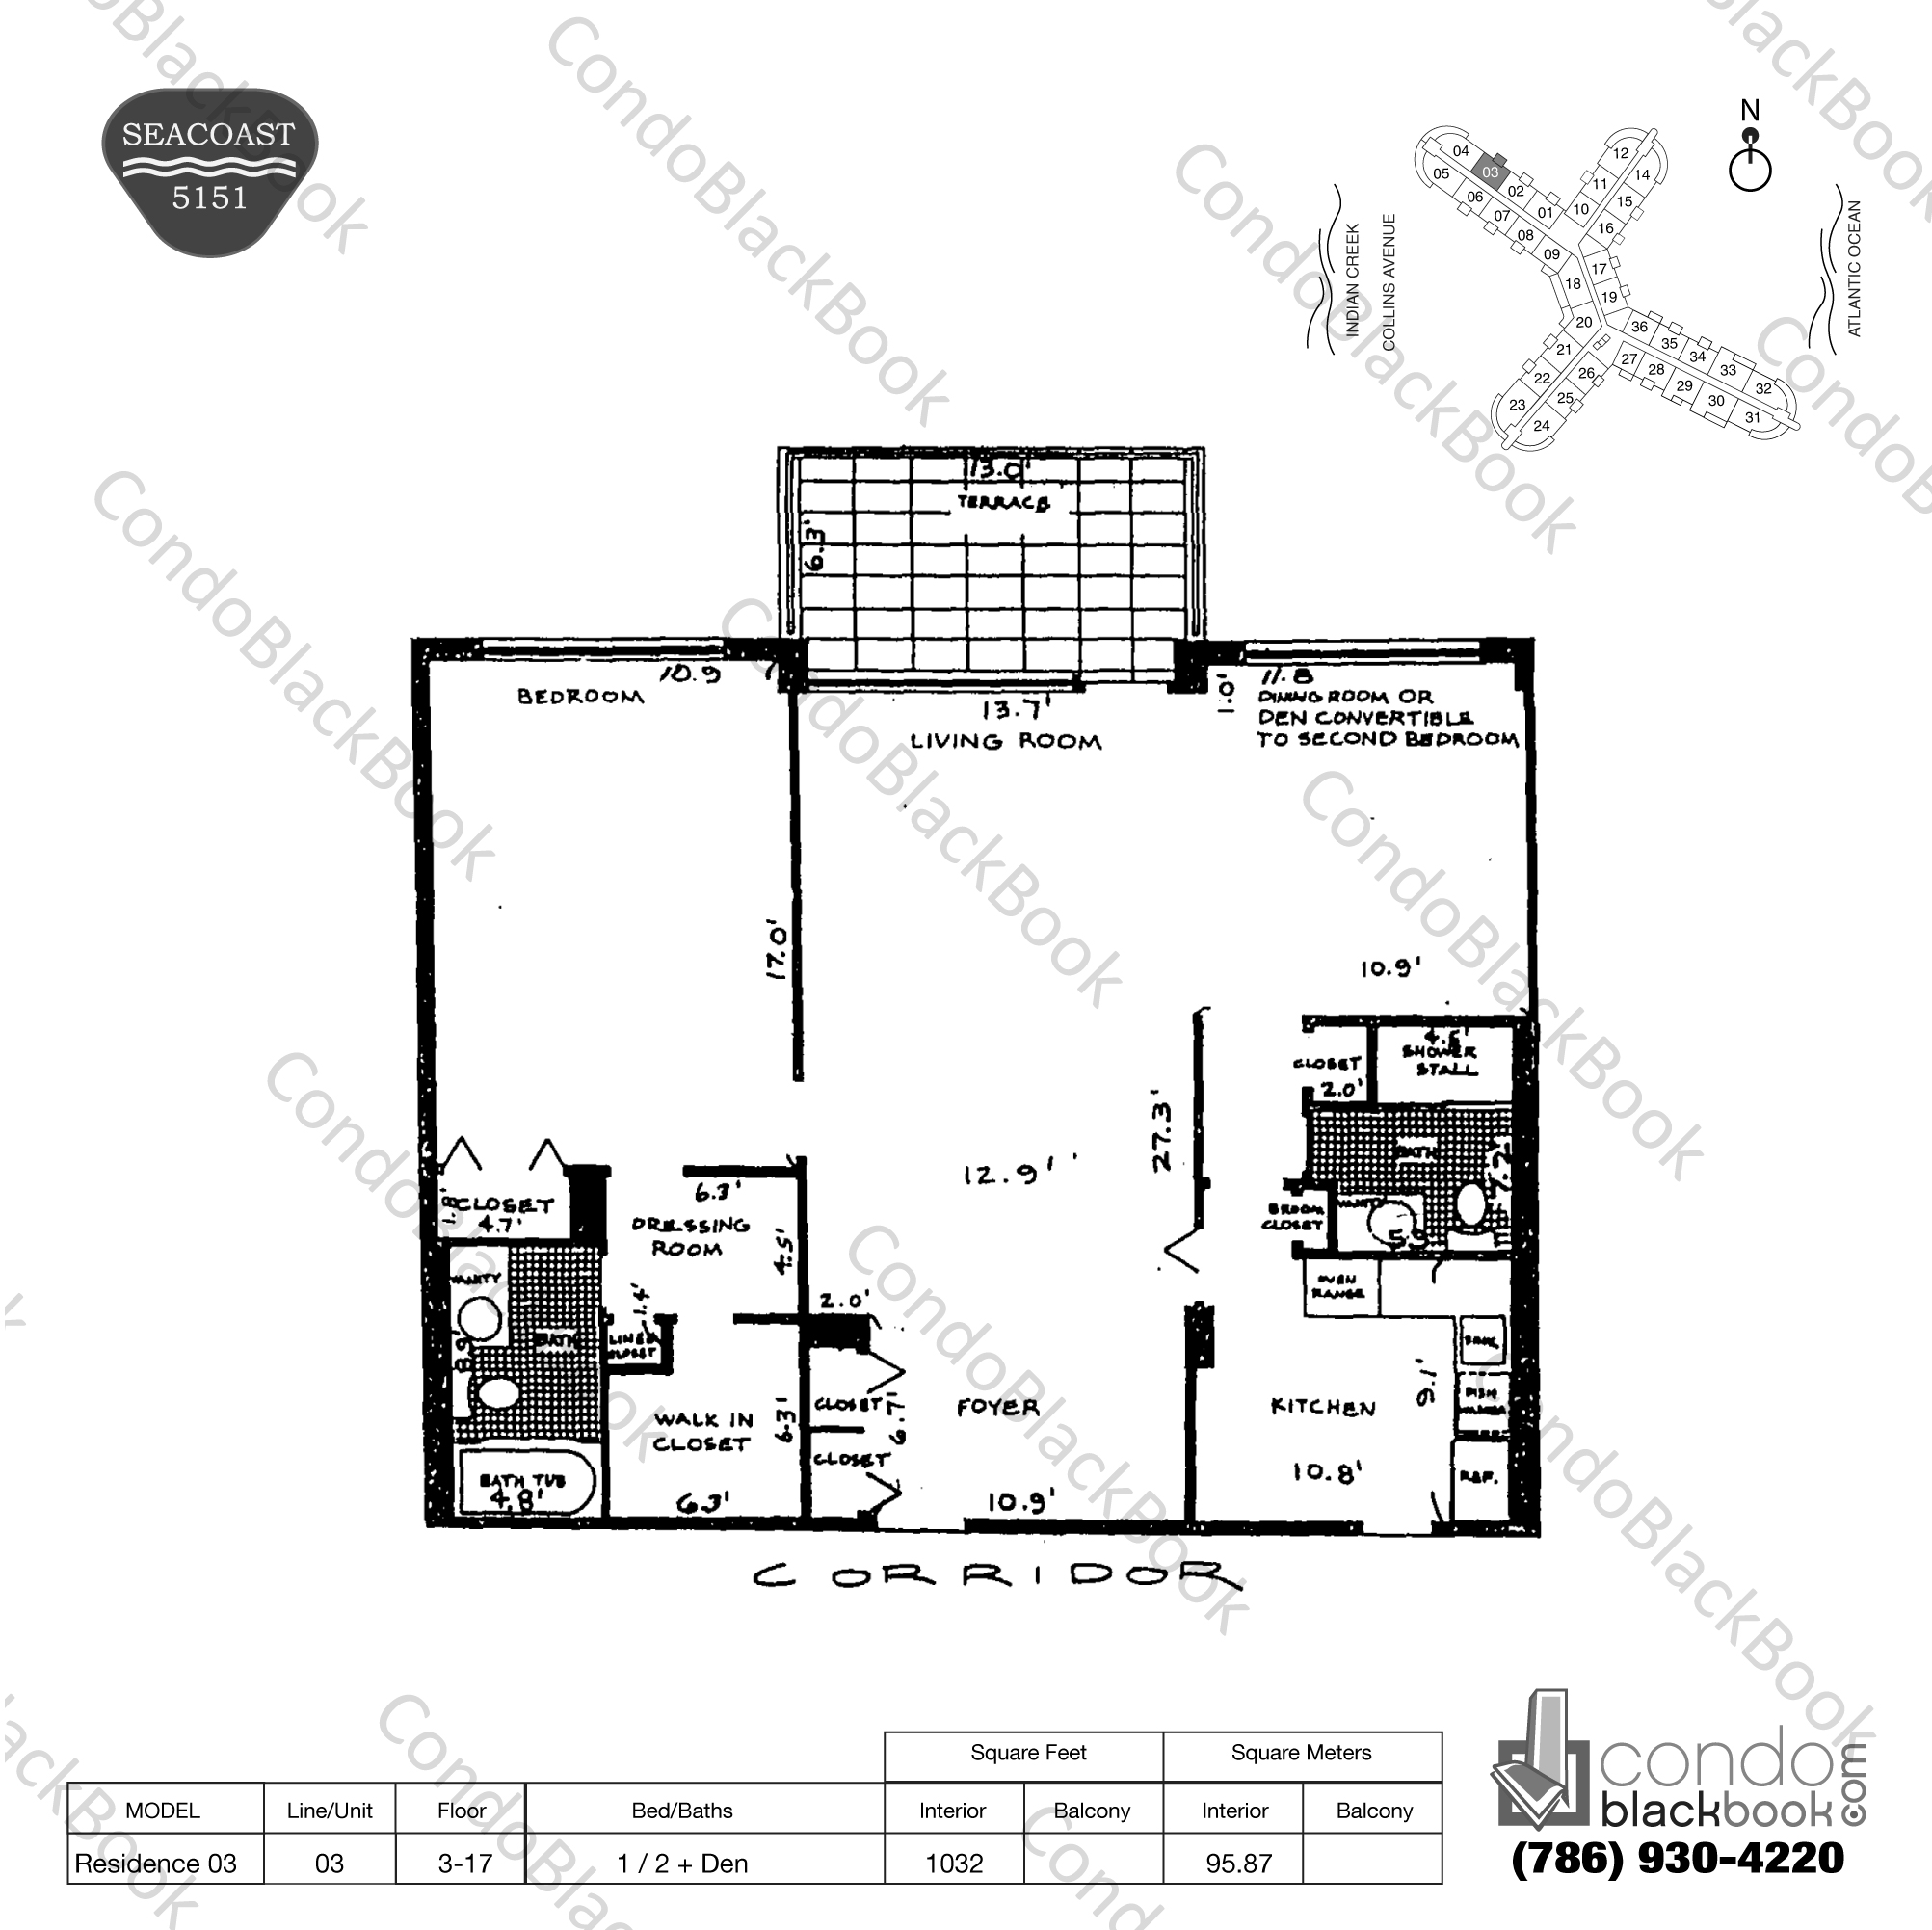 Floor plan for Seacoast 5151 Mid-Beach Miami Beach, model Residence 03, line 03, 1 / 2 + Den bedrooms, 1032 sq ft